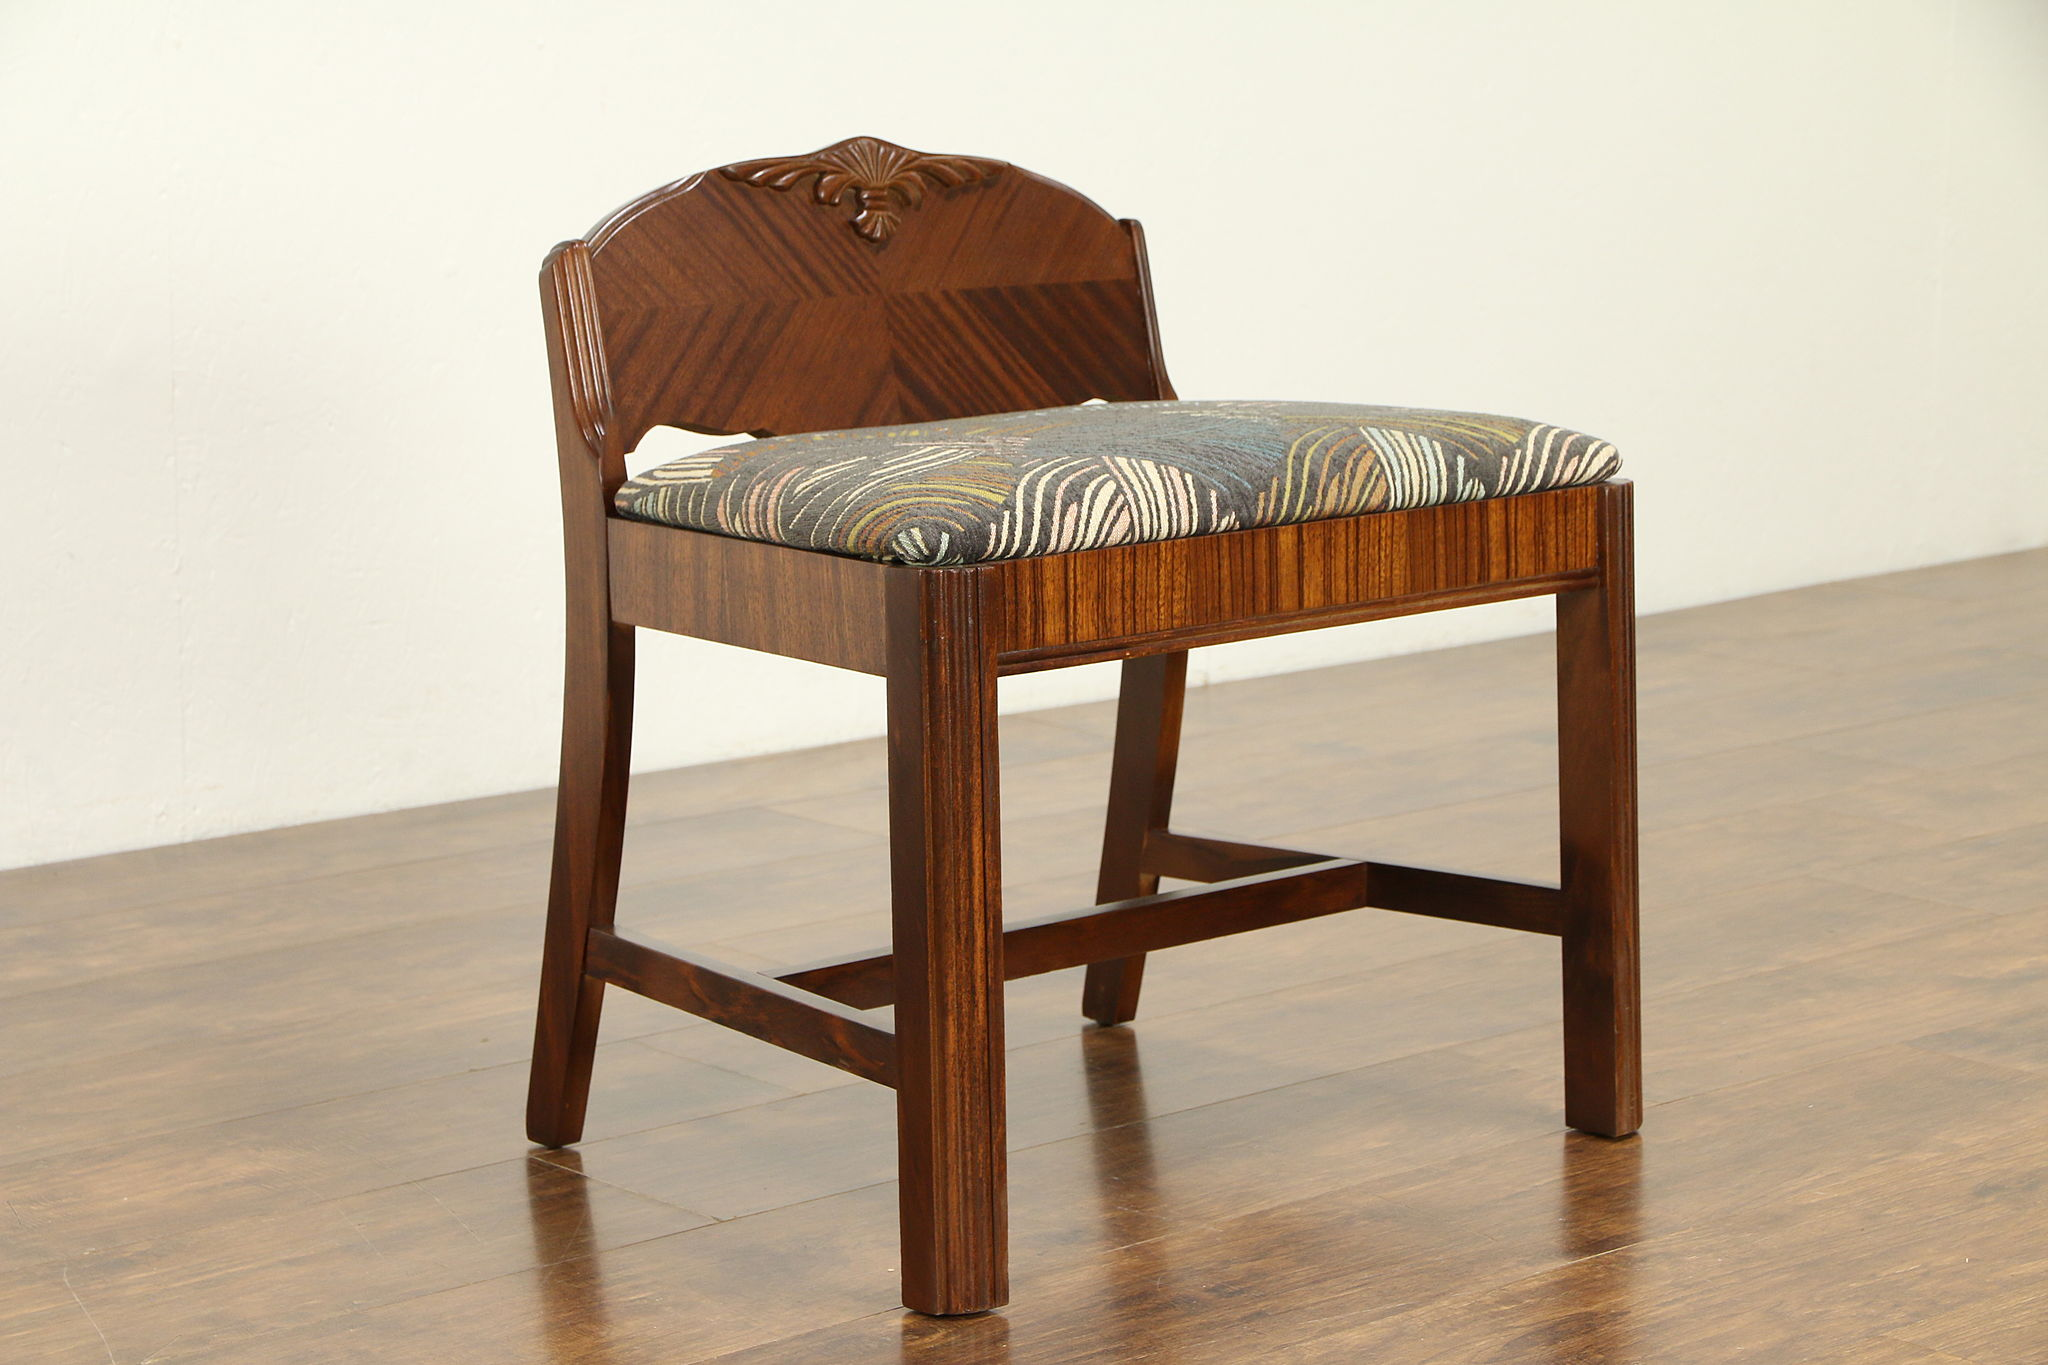 Sold Art Deco 1930 S Vintage Vanity Bench Or Chair New Upholstery 32221 Harp Gallery Antiques Furniture